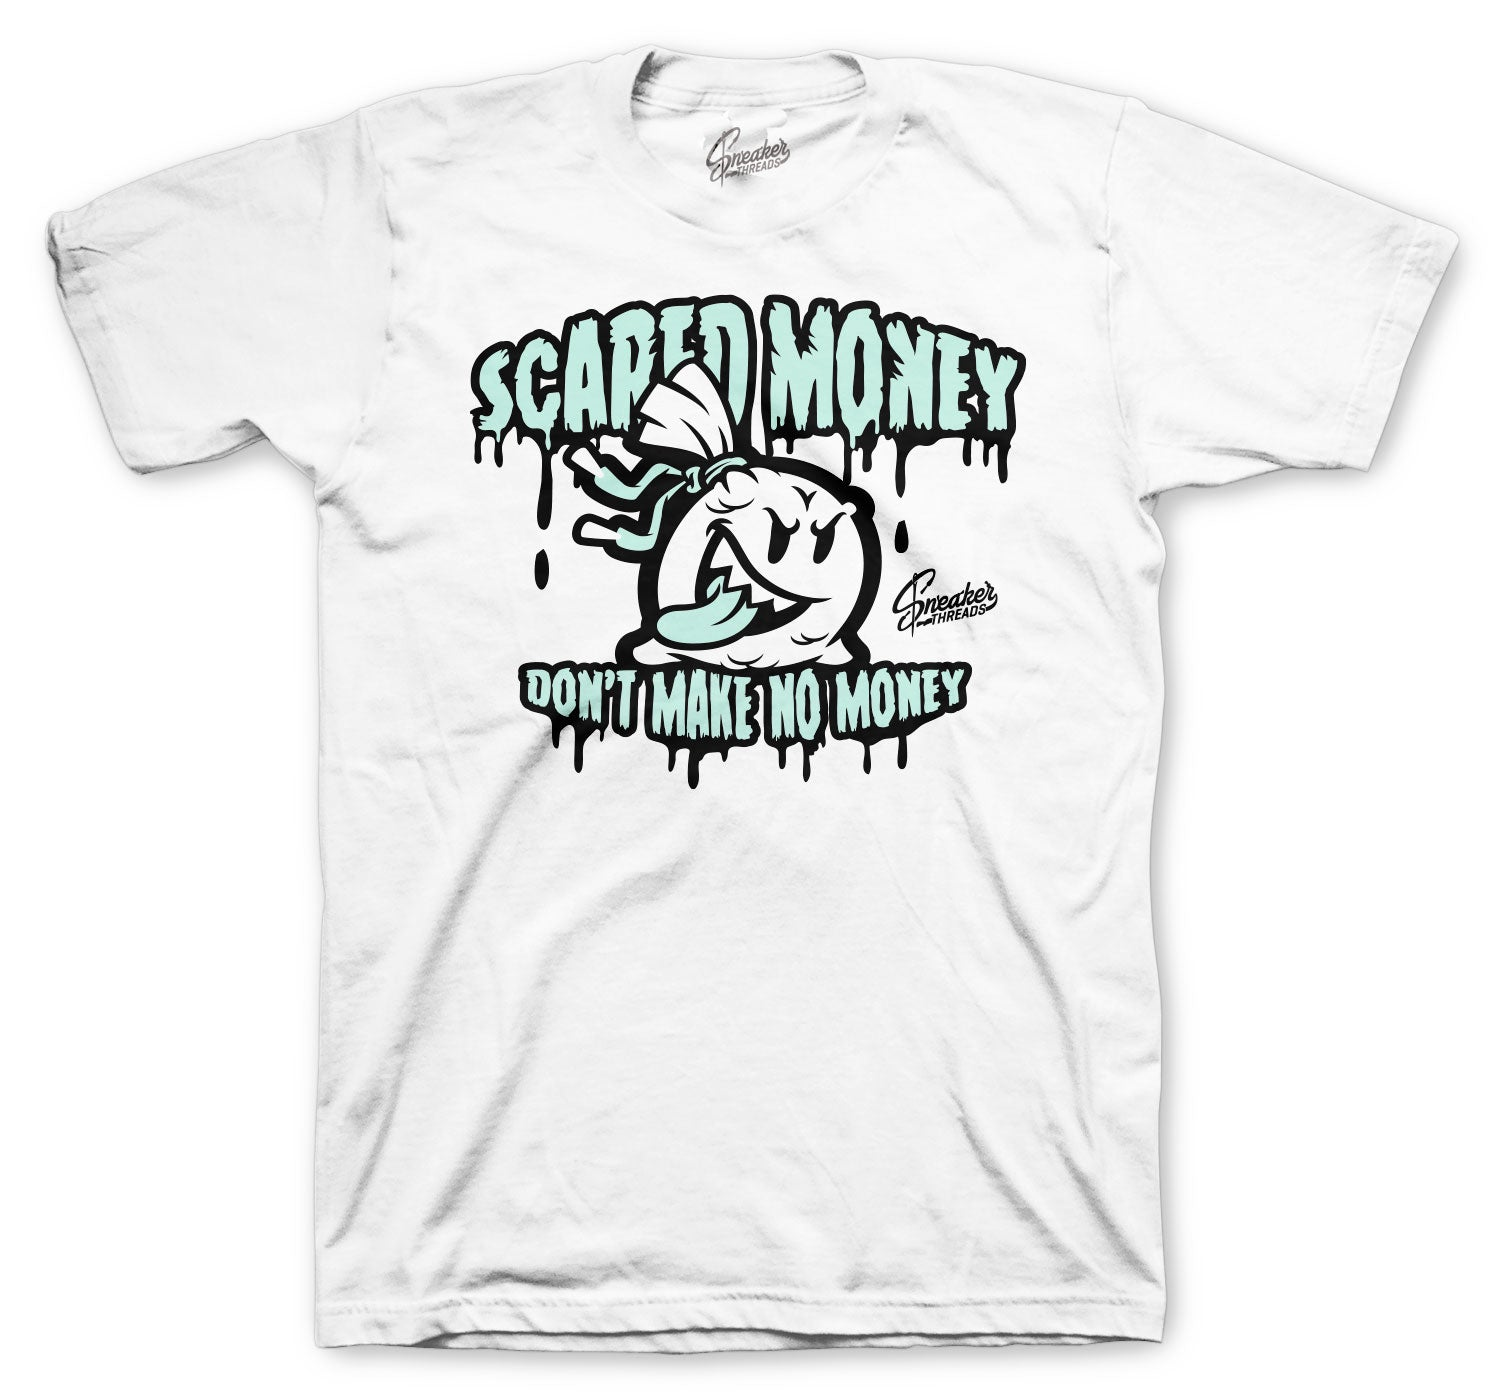 Jordan 12 Easter Shirt - Scared Money - White